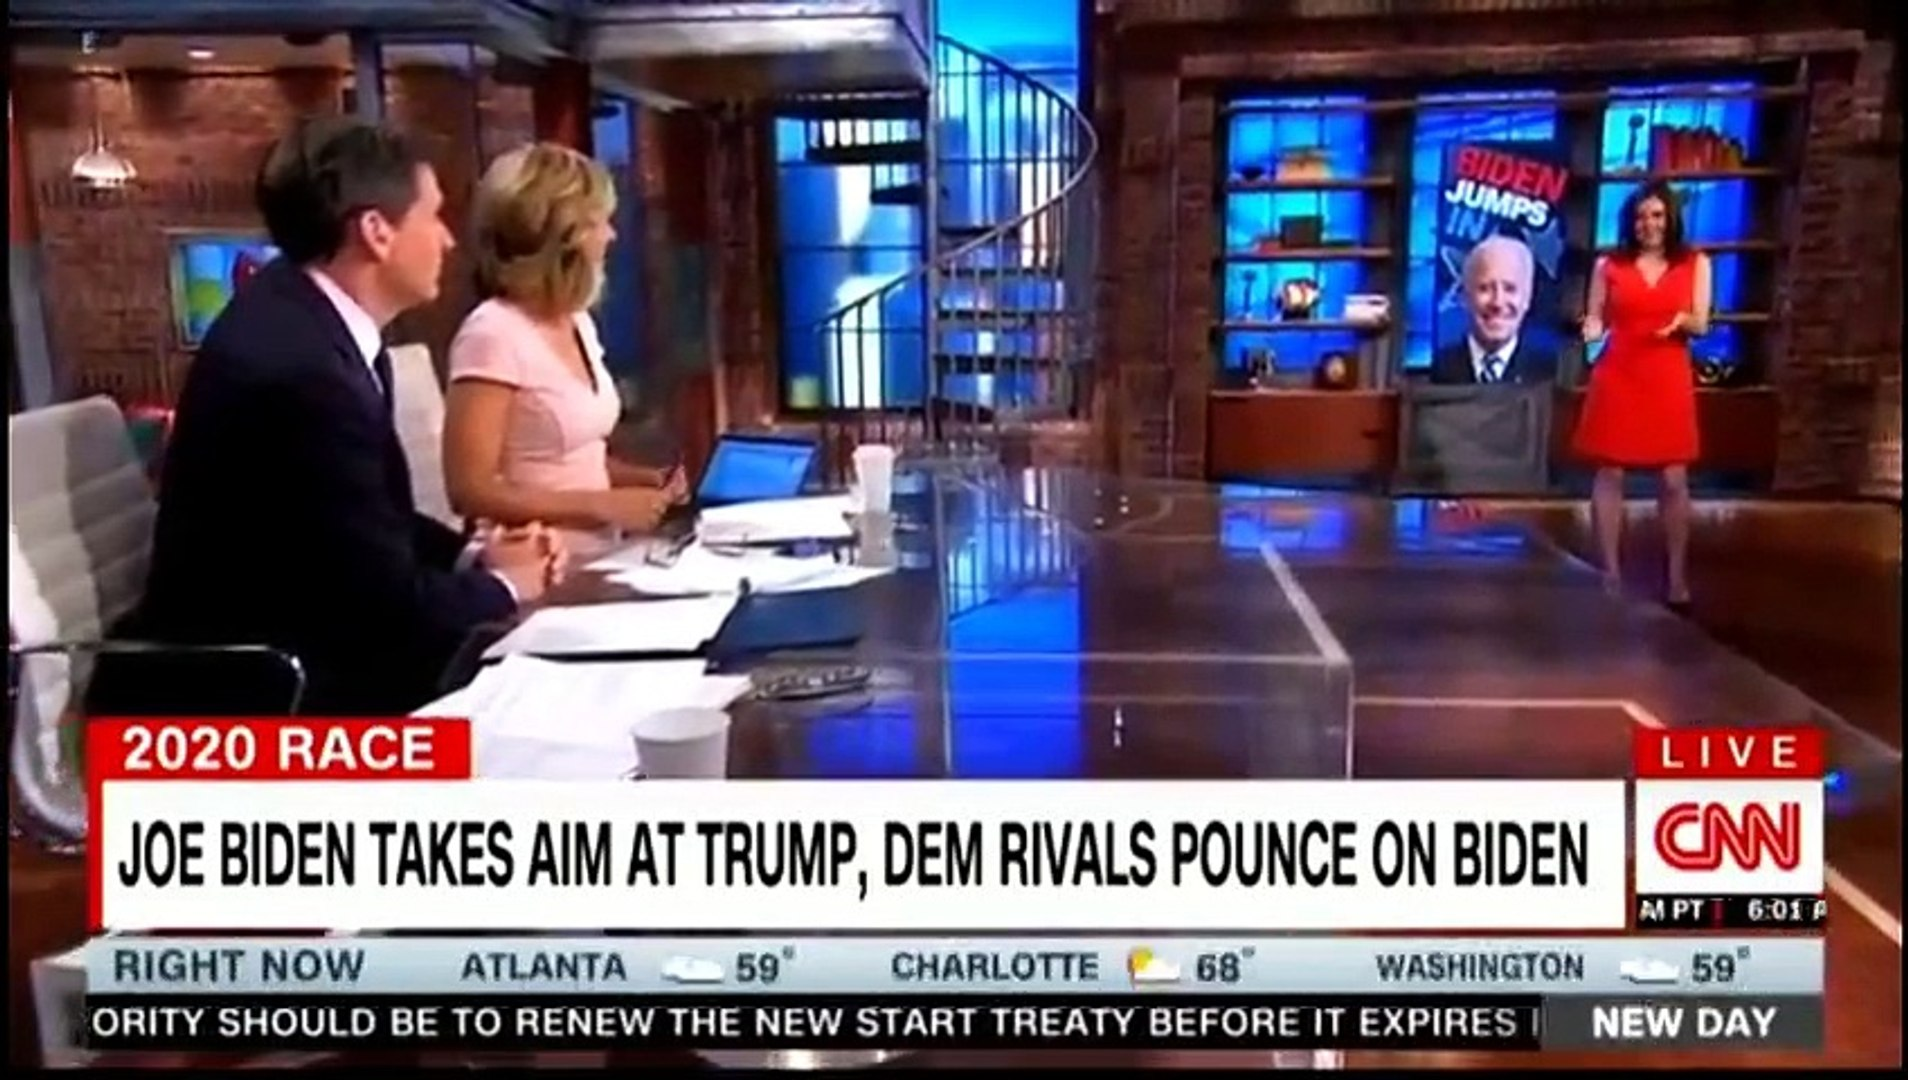 Trump Takes Shot At Biden's Intelligence After Campaign Launch - CNN New Day [10PM] 4-26-2019